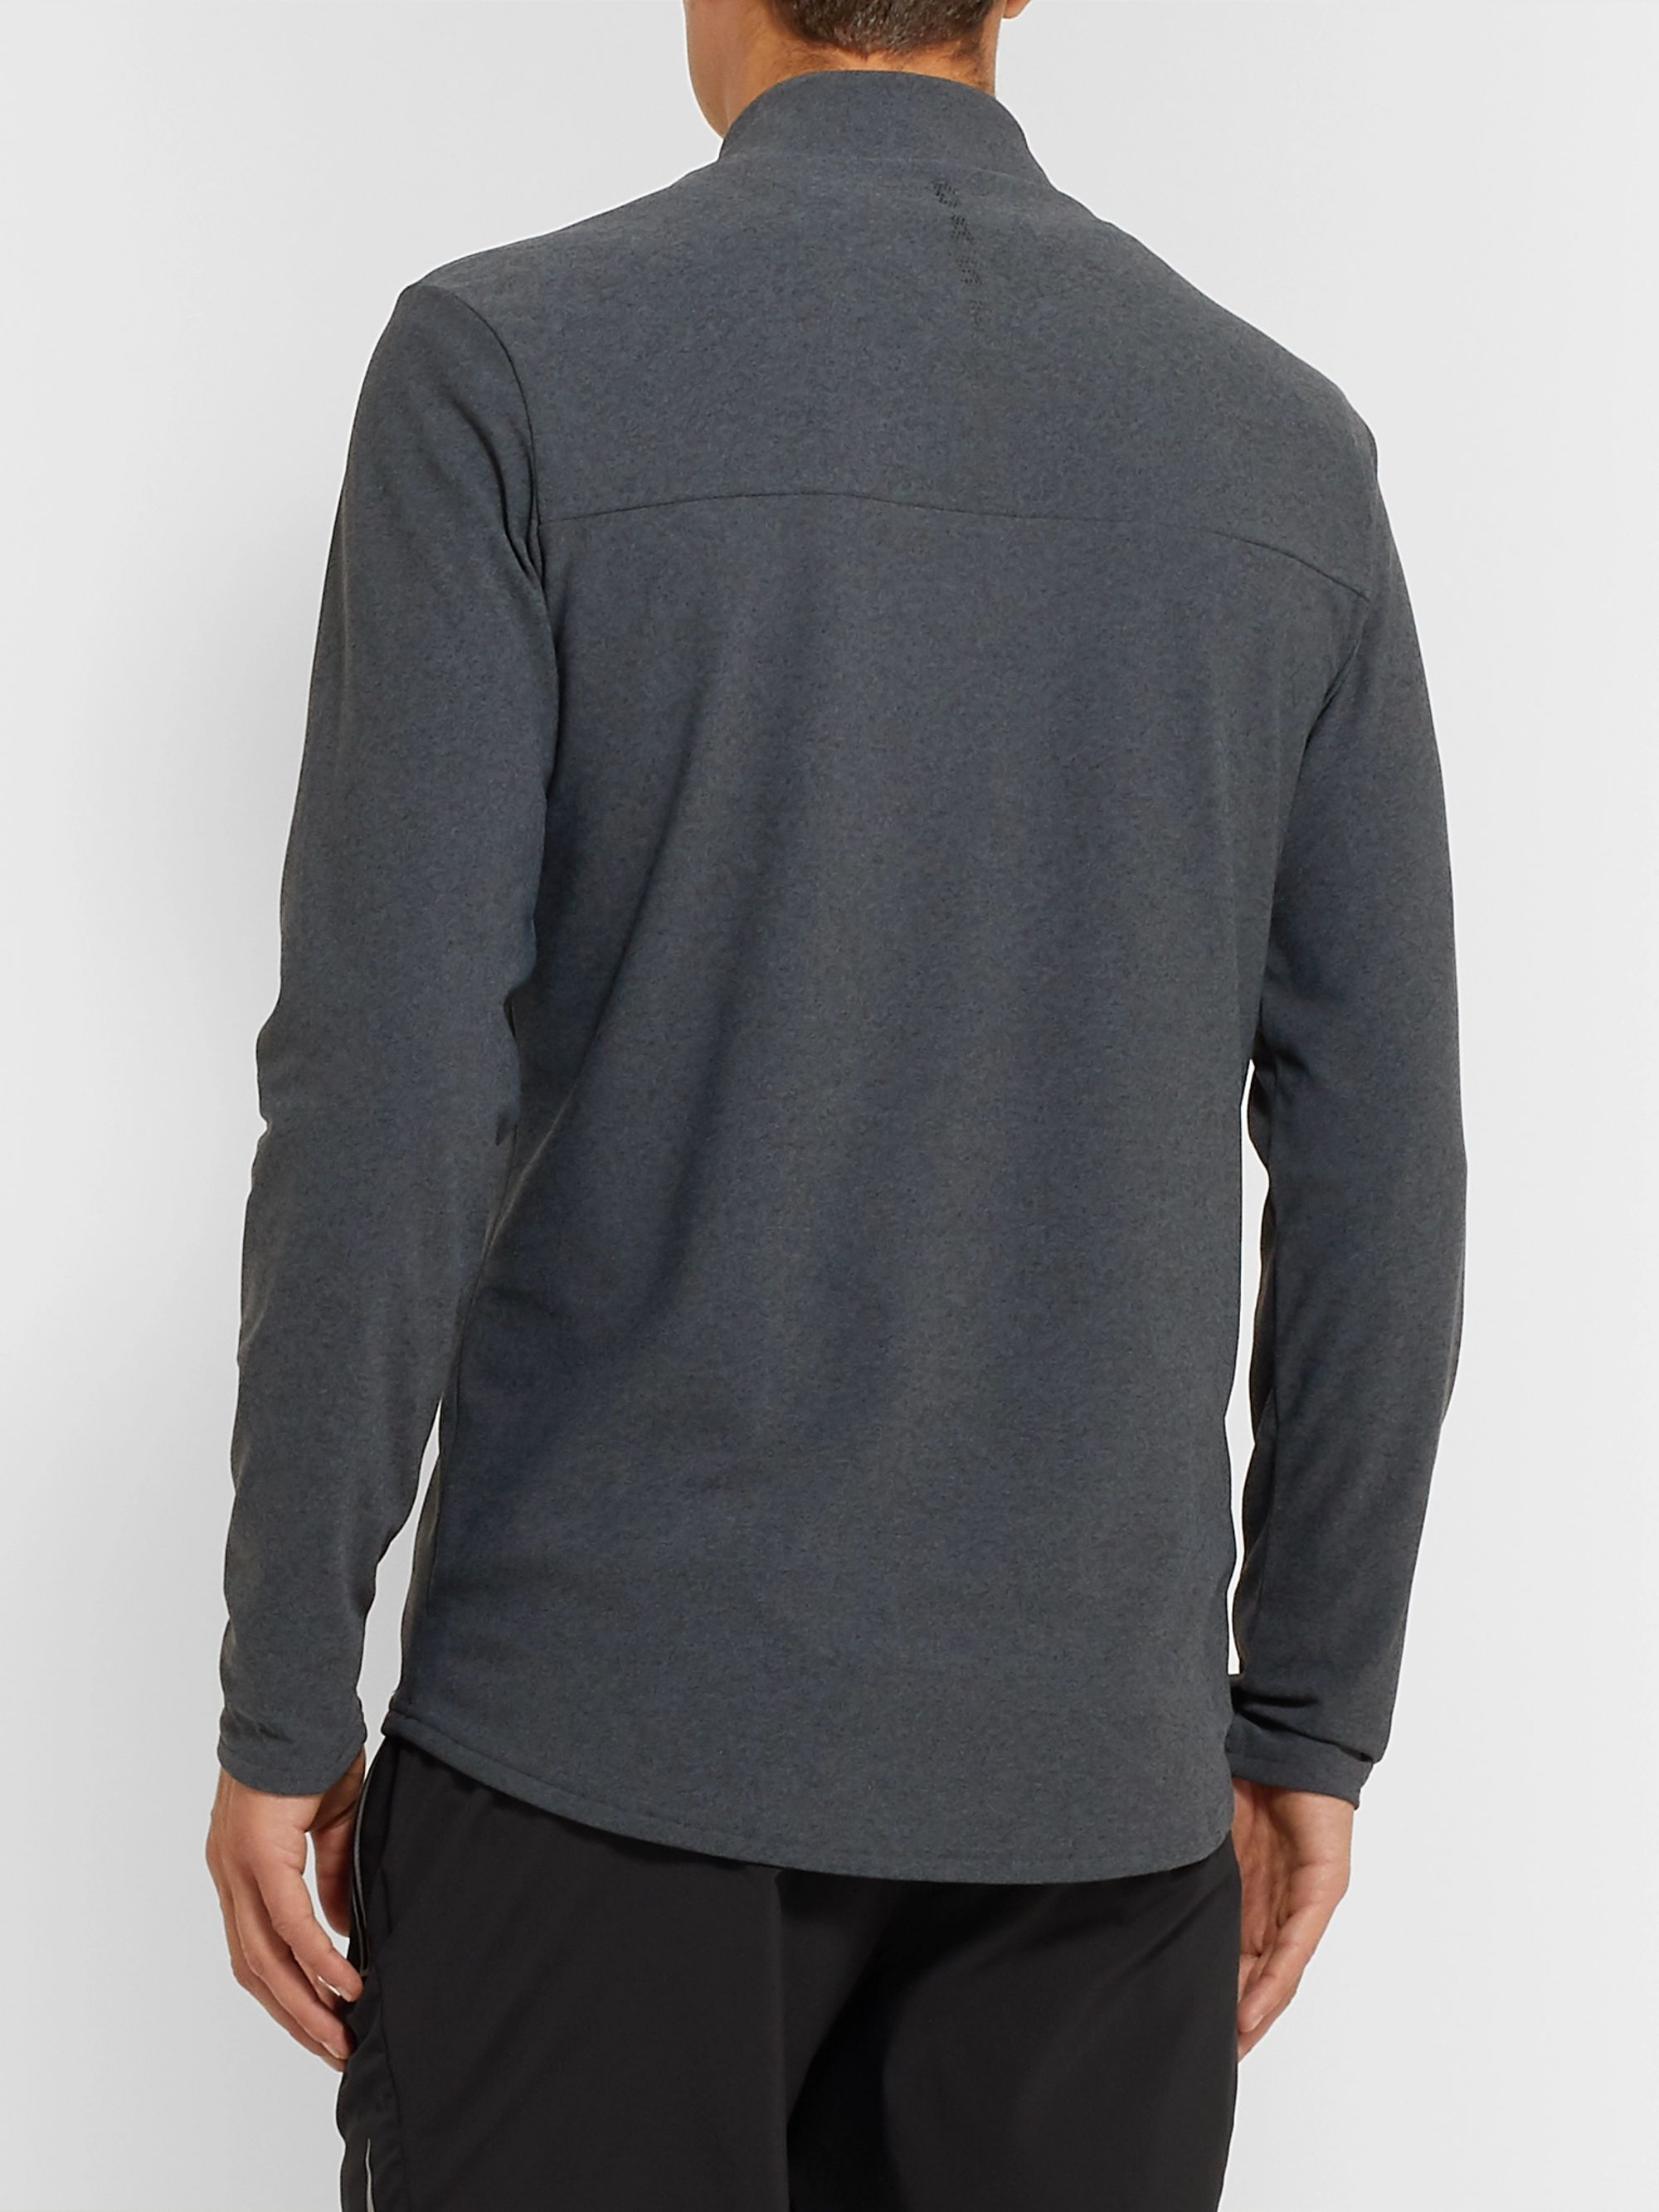 CASTORE Marshall Slim-Fit Half-Zip Jacket